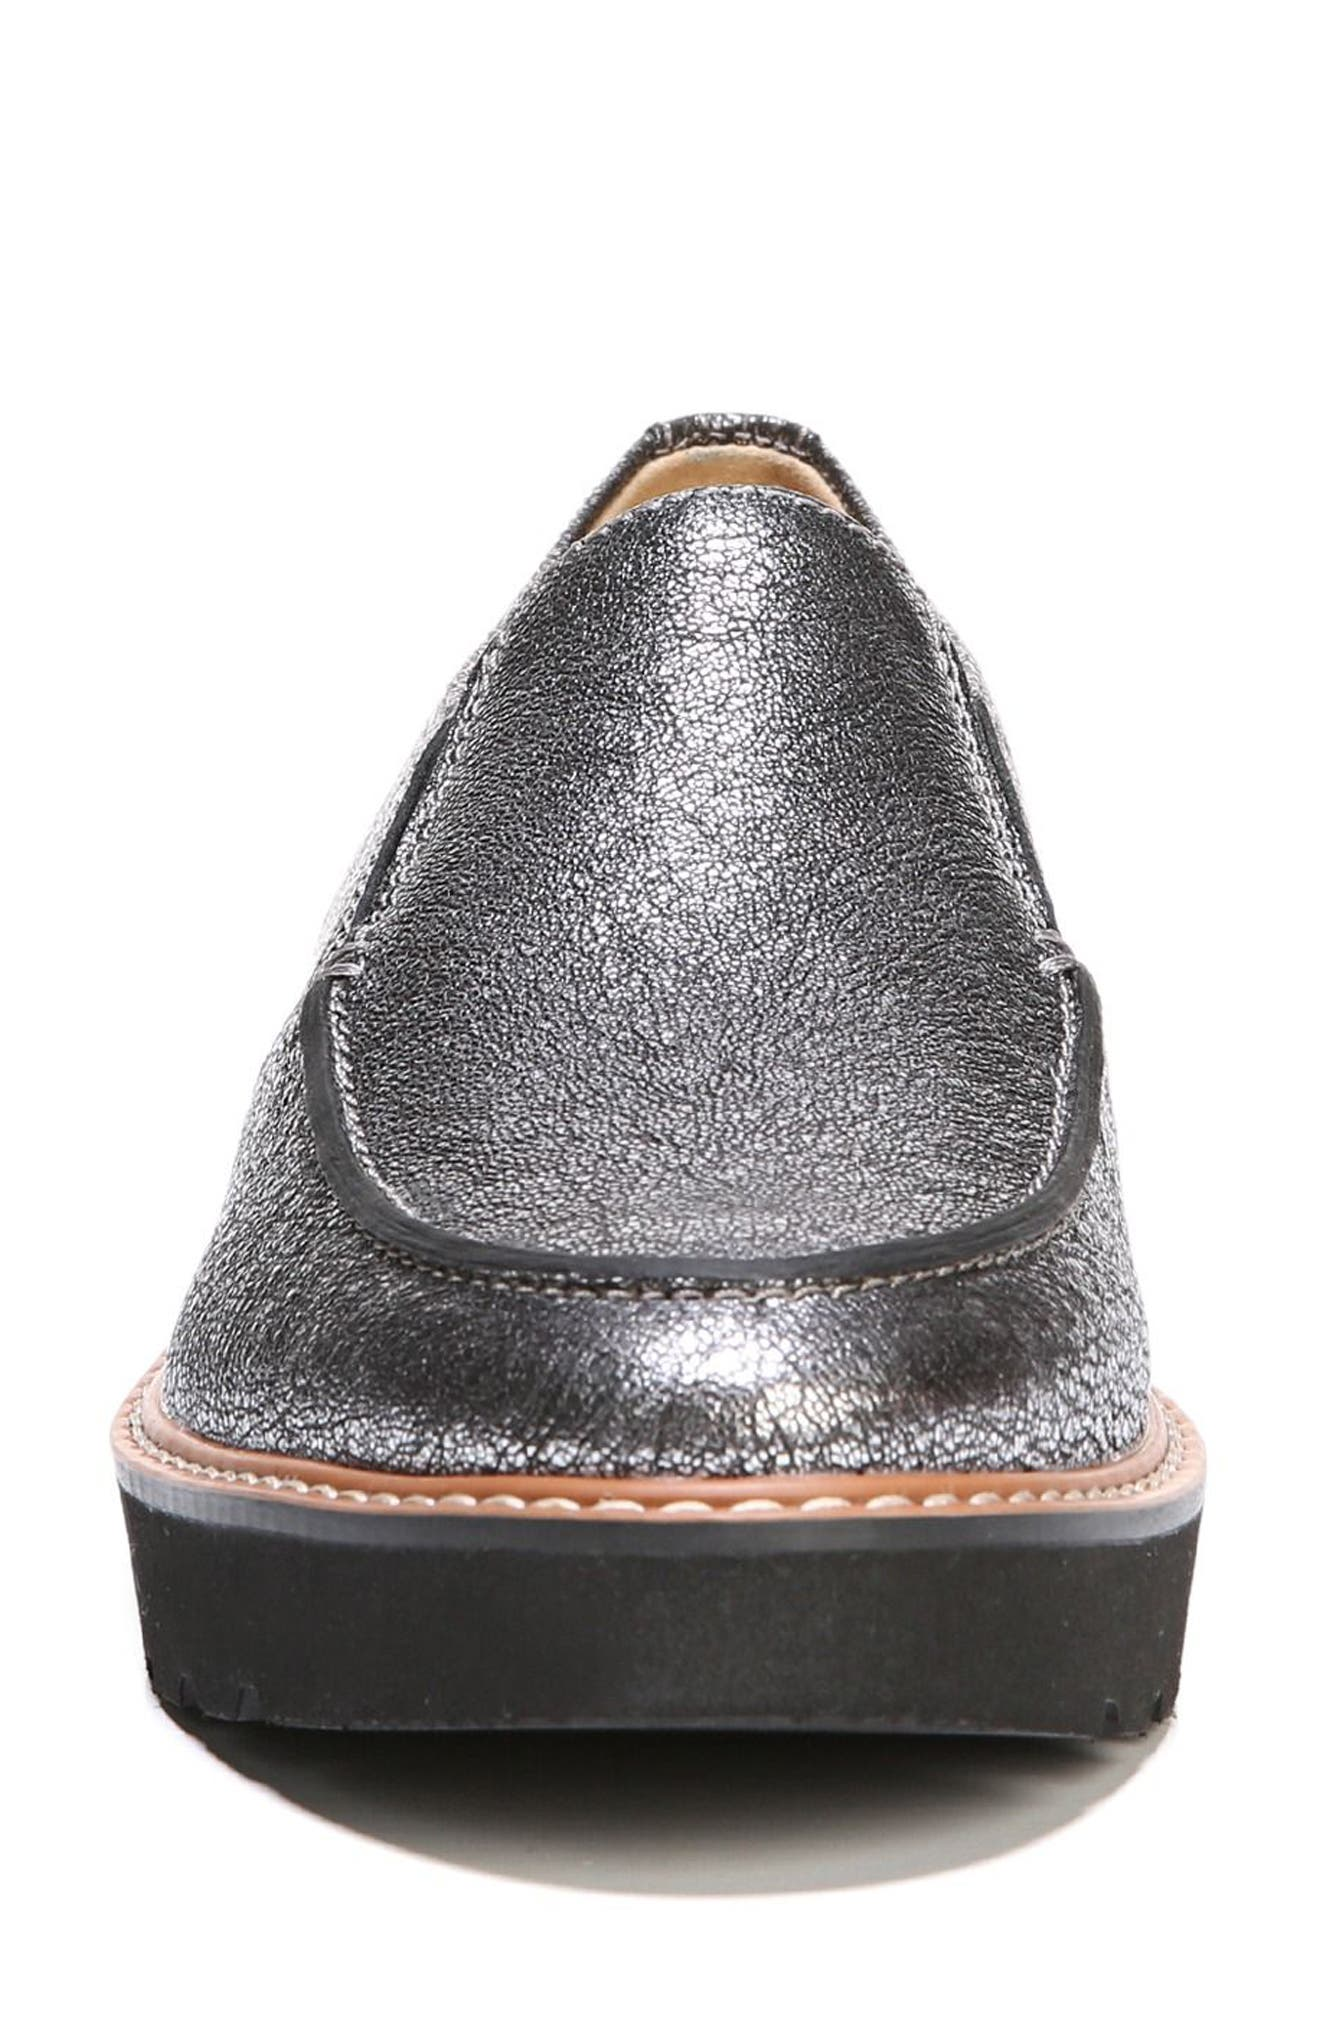 Aibileen Loafer,                             Alternate thumbnail 4, color,                             SILVER LEATHER